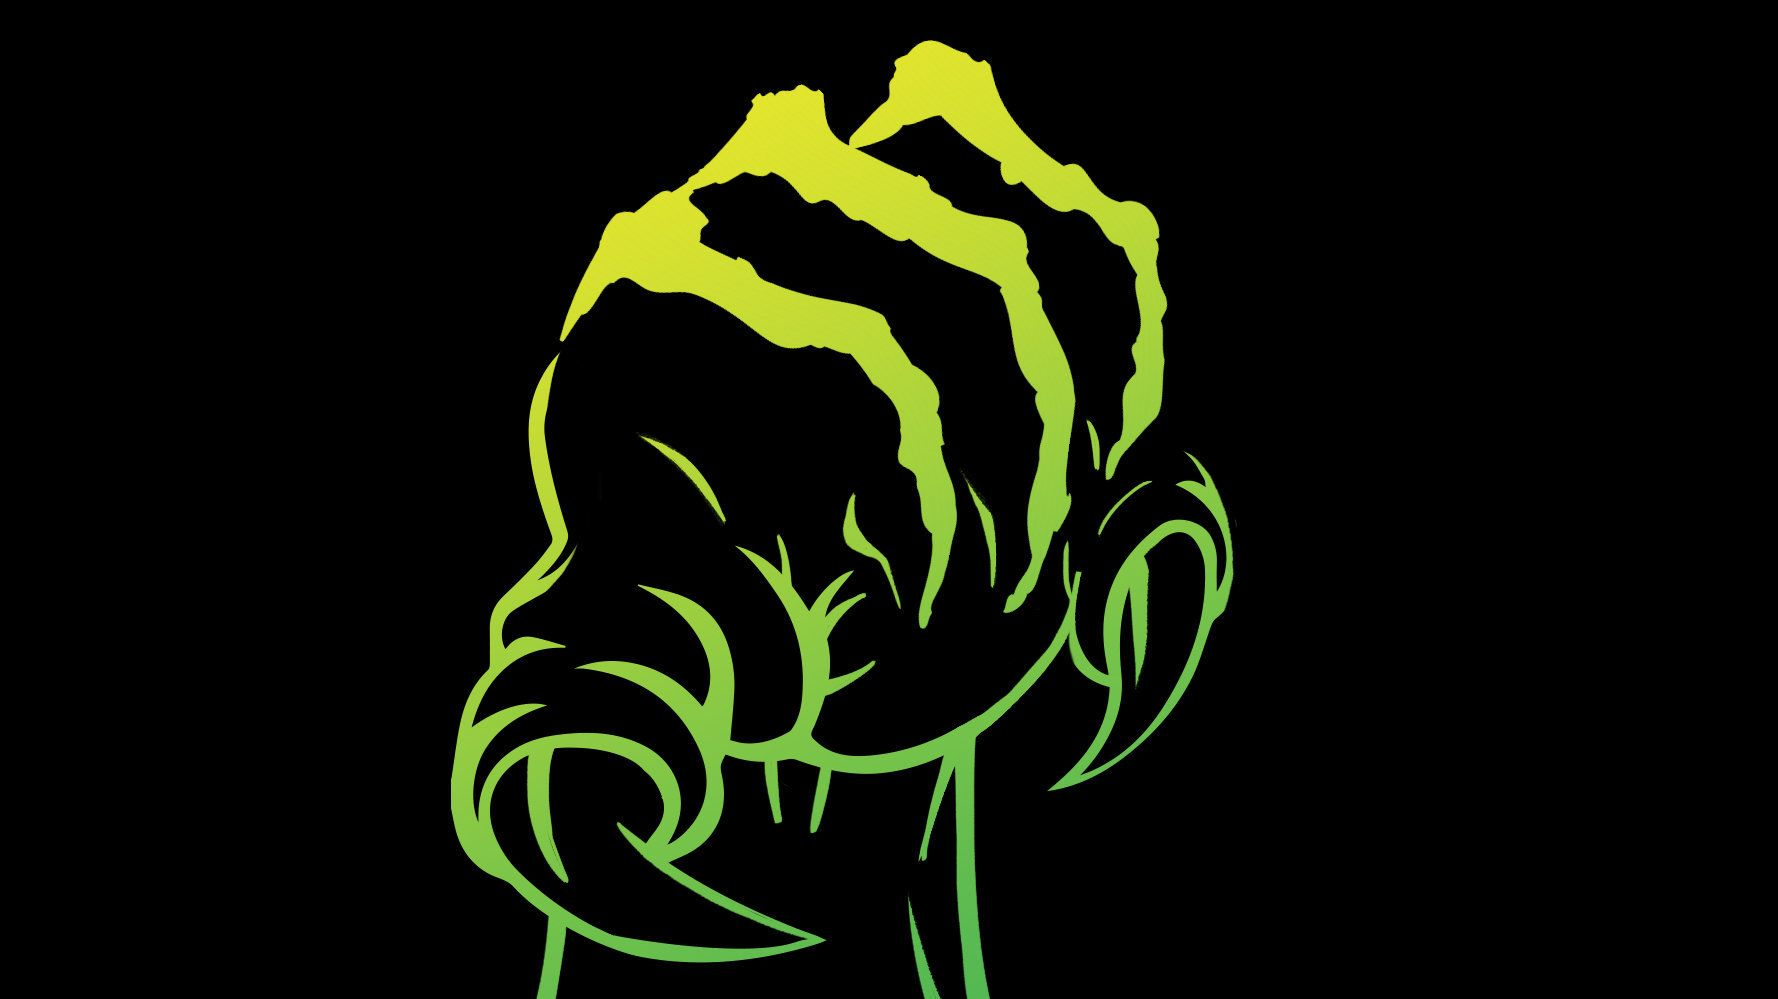 Exclusive: 5 Women Sue Monster Energy Over Abusive